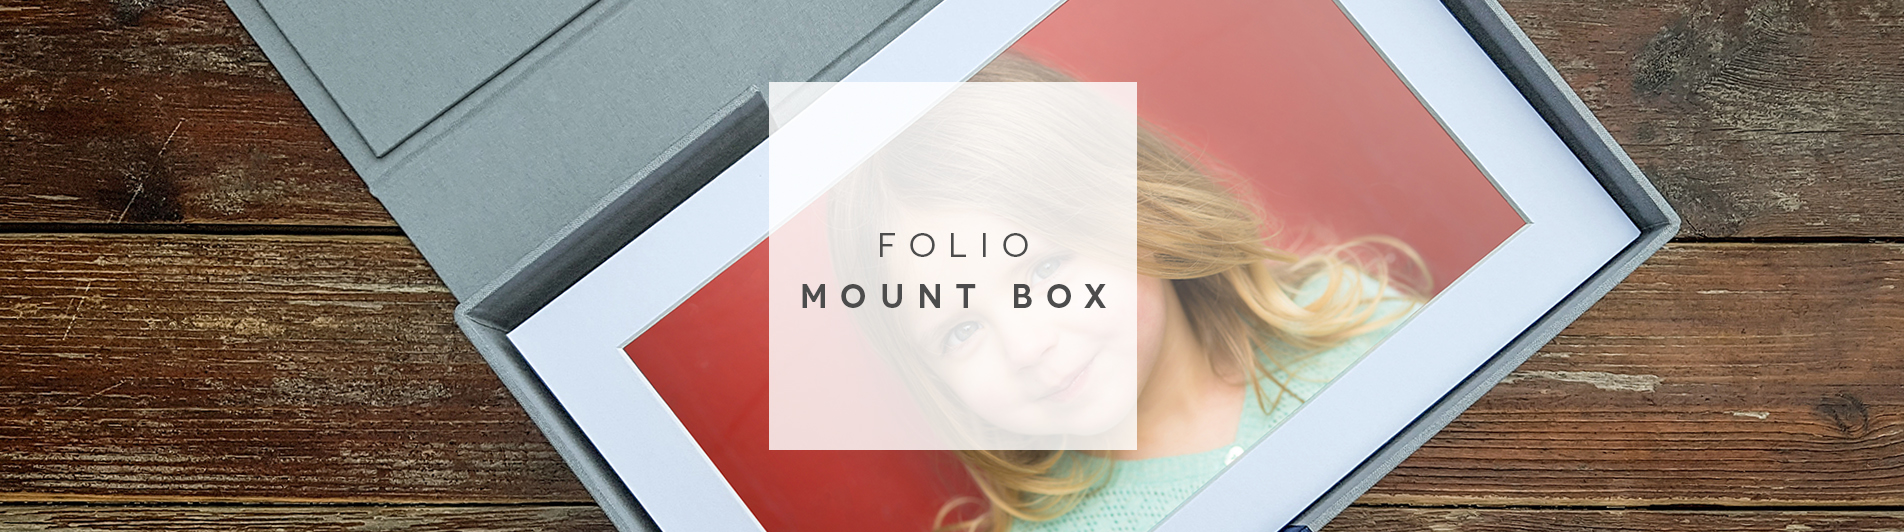 Header image for Folio Mount Boxes